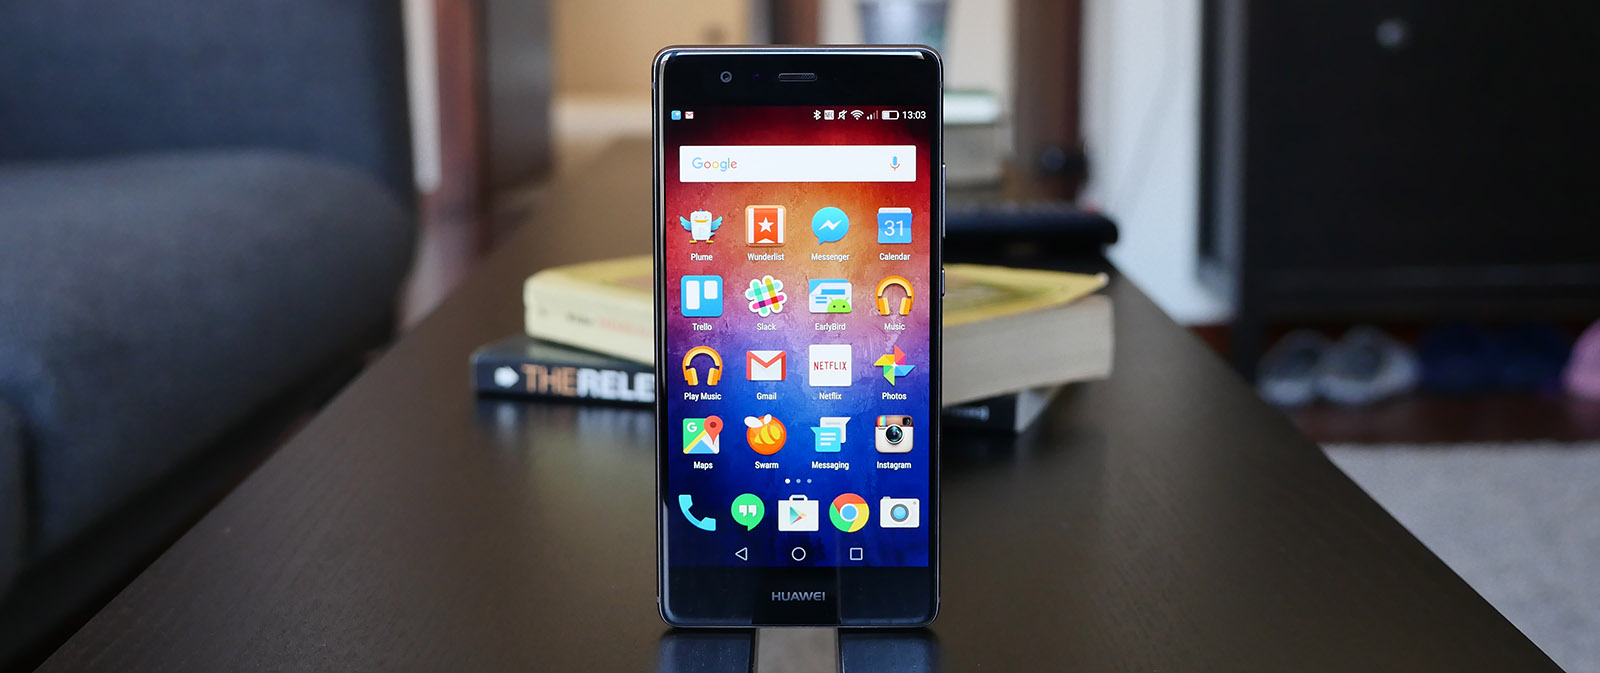 14 first things every Huawei P9 owner should do